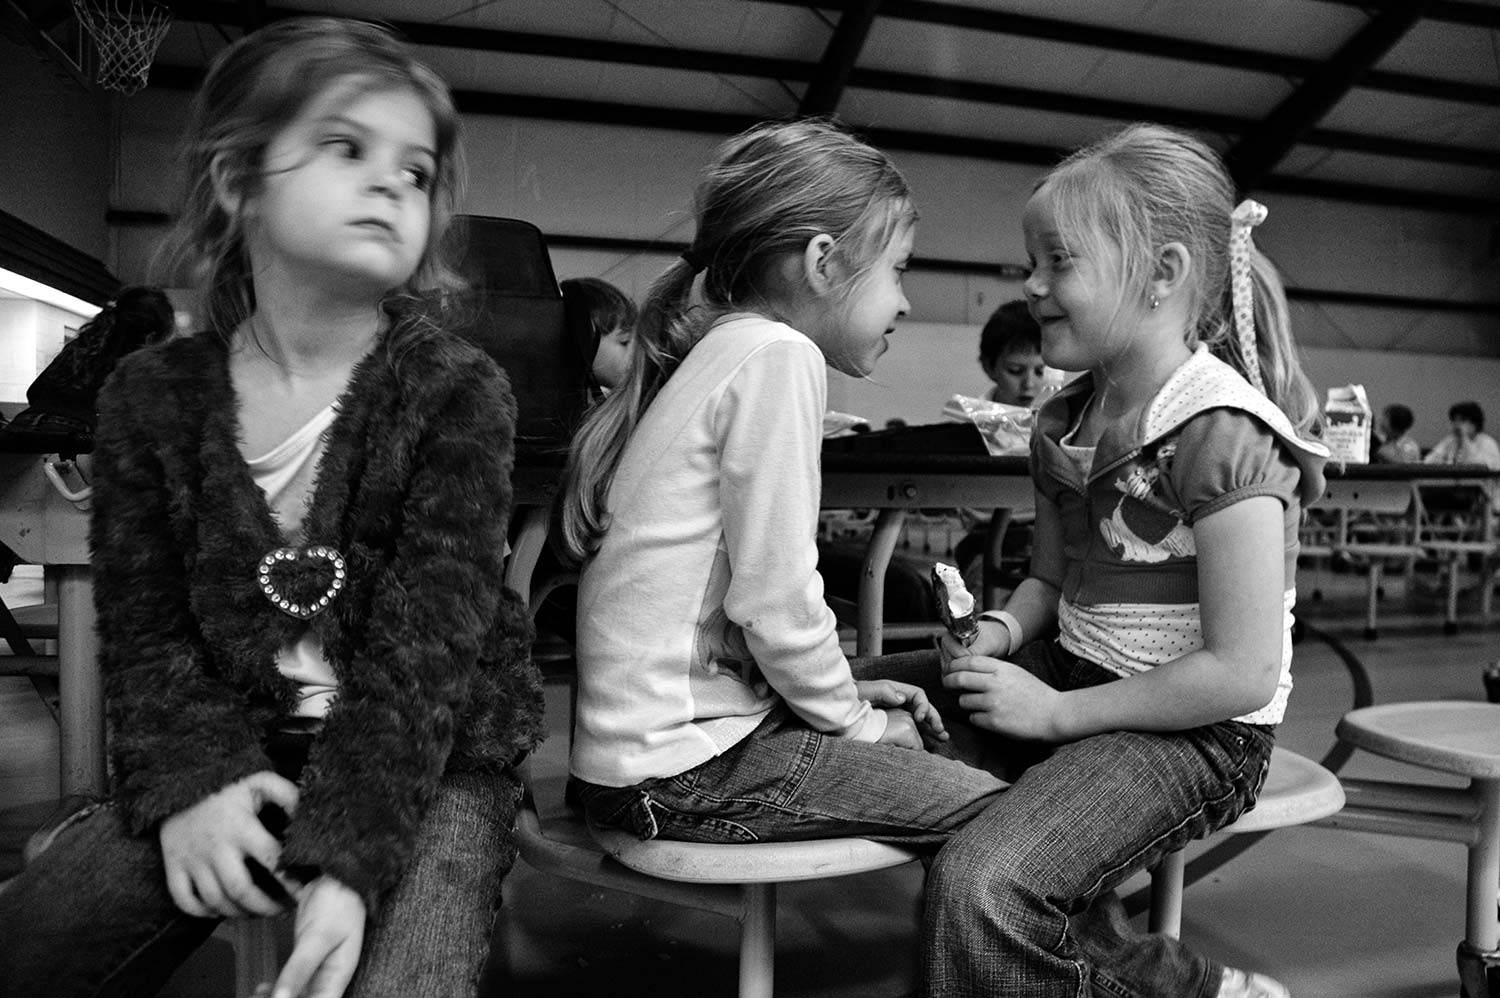 Sarah Lewis, Taylor Bell and Madison Spradlin, kindergarten students at the Christian Academy of Campbell County, wait for their ice cream at lunchtime. Photo By Erin Hatfield. - 2008